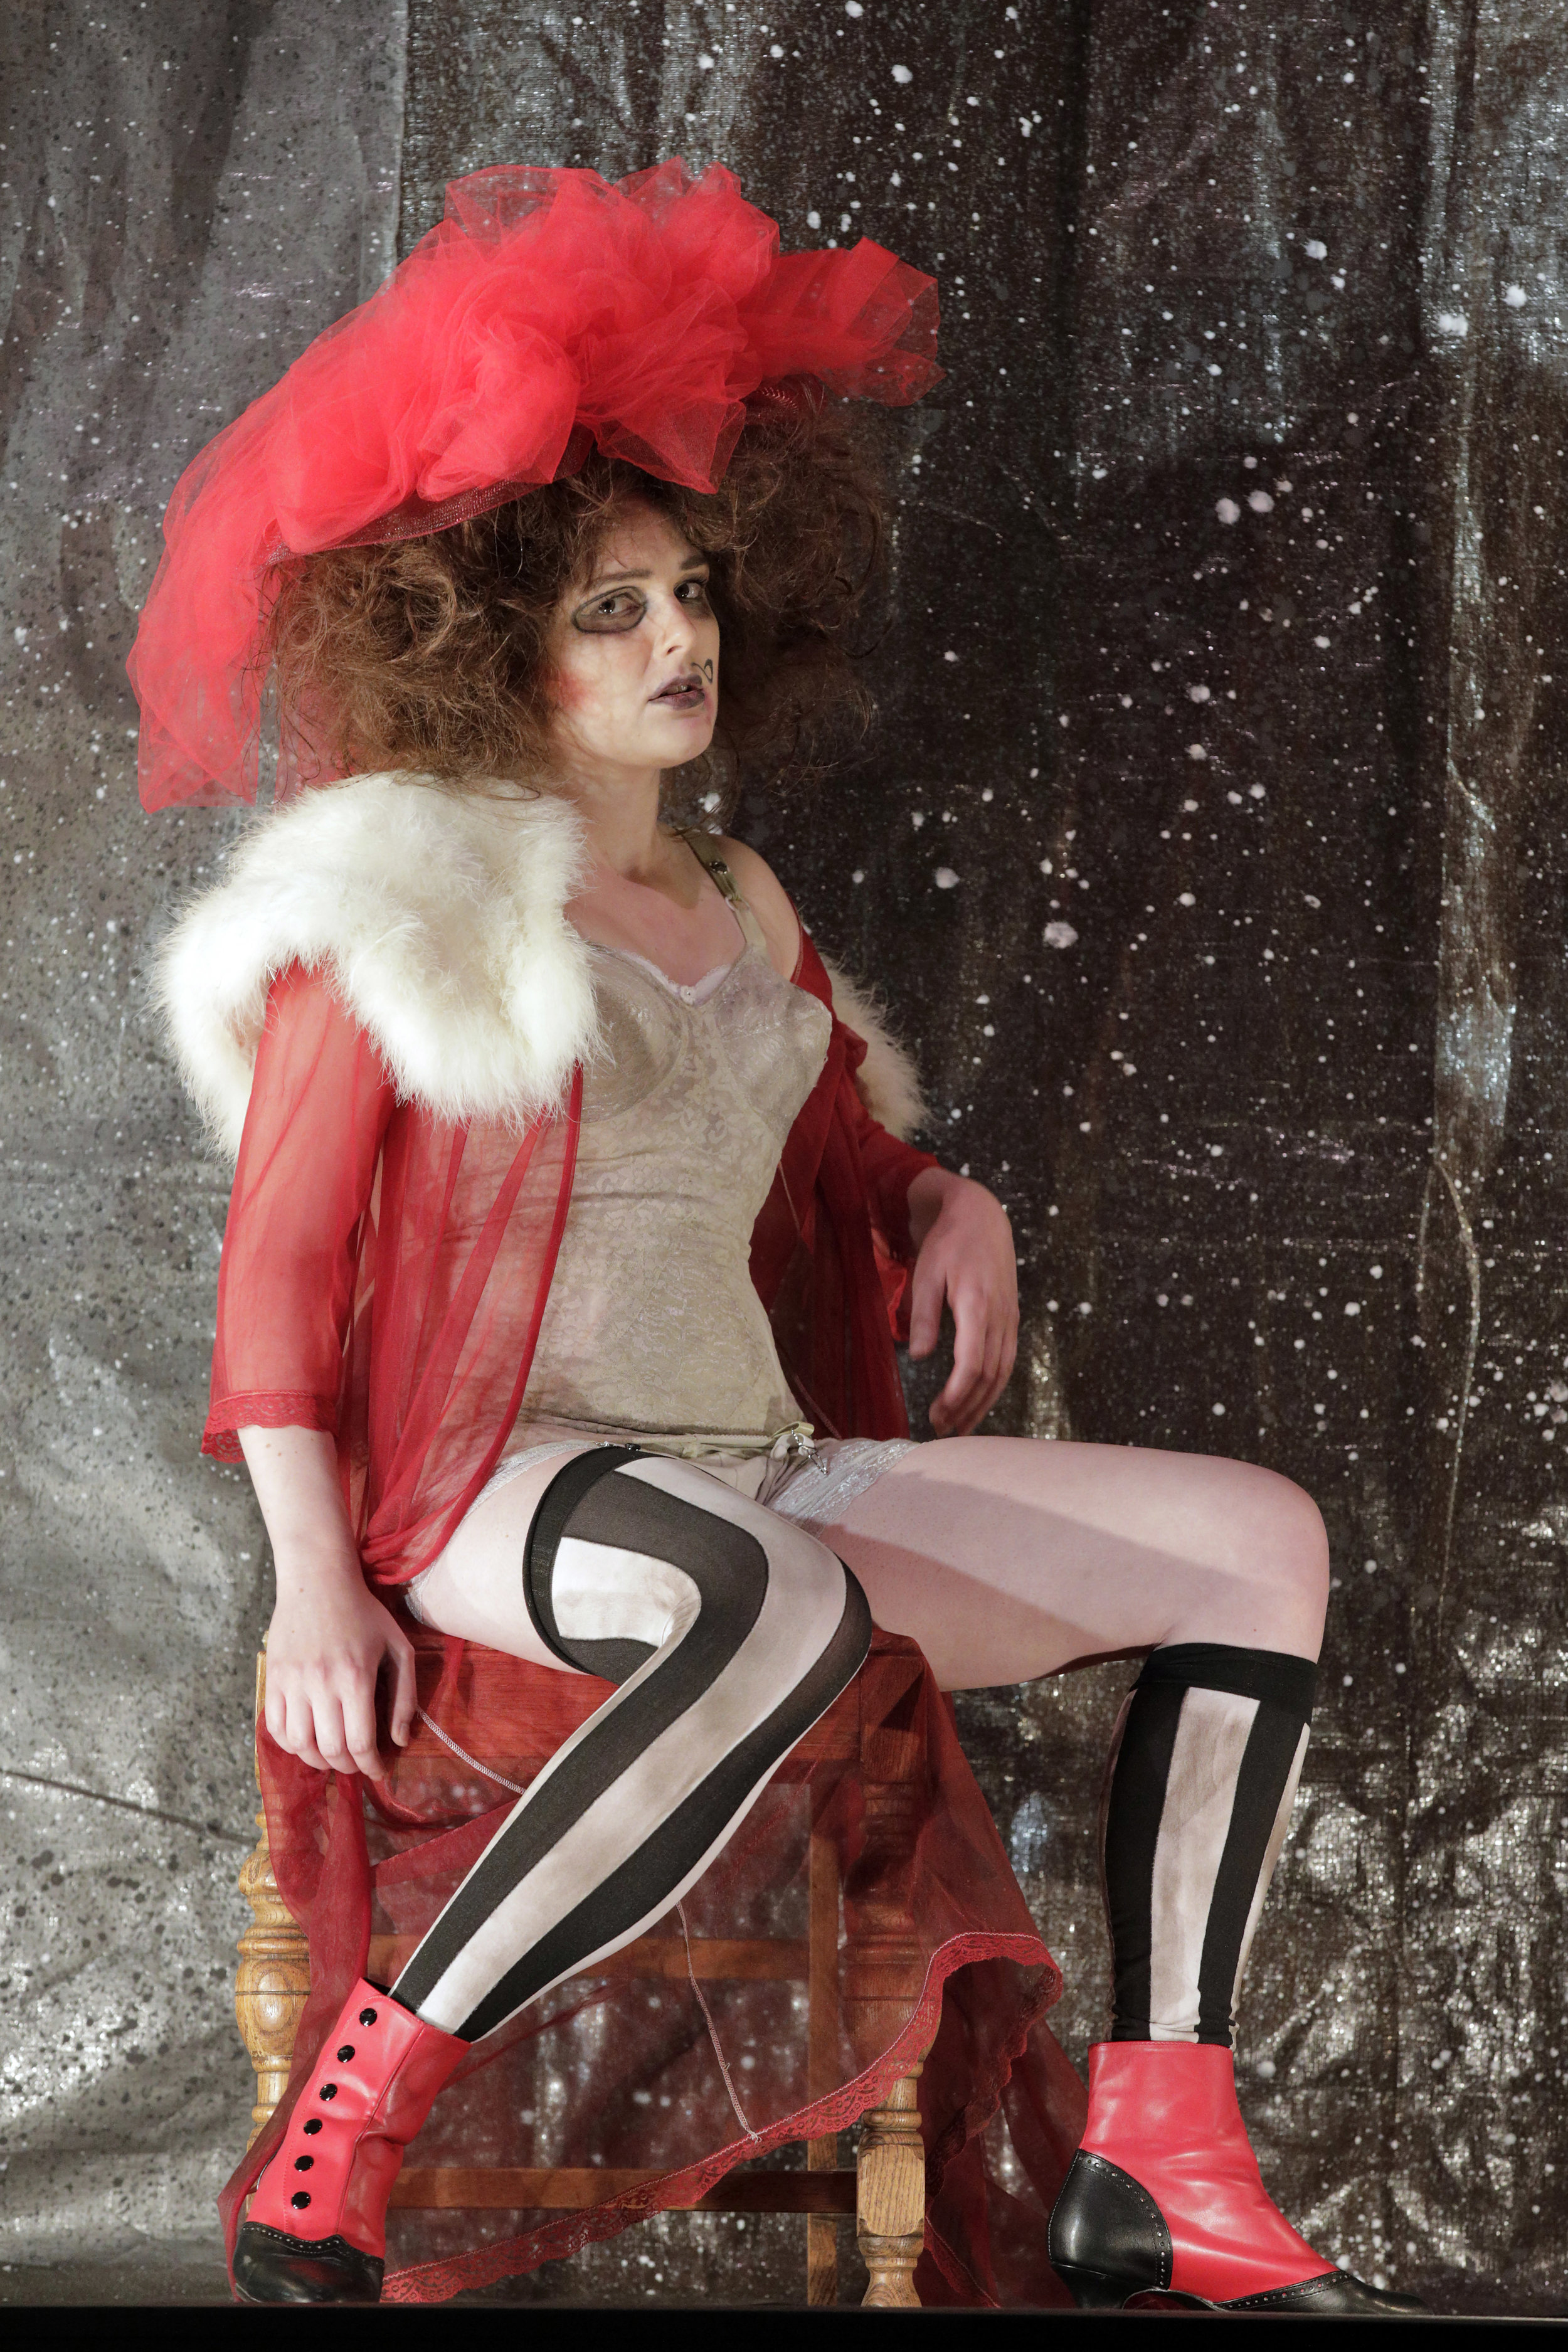 """The Threepenny Opera - West Edge Opera 2019""""Jenny Diver, performed by Sarah Coit, offered another layer of these, as well as a taste of melancholy, again, sonorous but unsentimental, strong but neither wayward nor affected. Her upper register soared at times – the lower sometimes disappeared into her chest – and her beauty coupled with genuine eros pinged the stage with genuine sensuality. She had something to say, in both words, music and performance: that was a pleasure.""""- Lois Silverstein, Operawire""""Sarah Coit was a splendid presence as the prostitute Jenny Diver, singing with a robustness that matched the character's fearlessness.""""- Joshua Kosman, San Francisco Chronicle"""